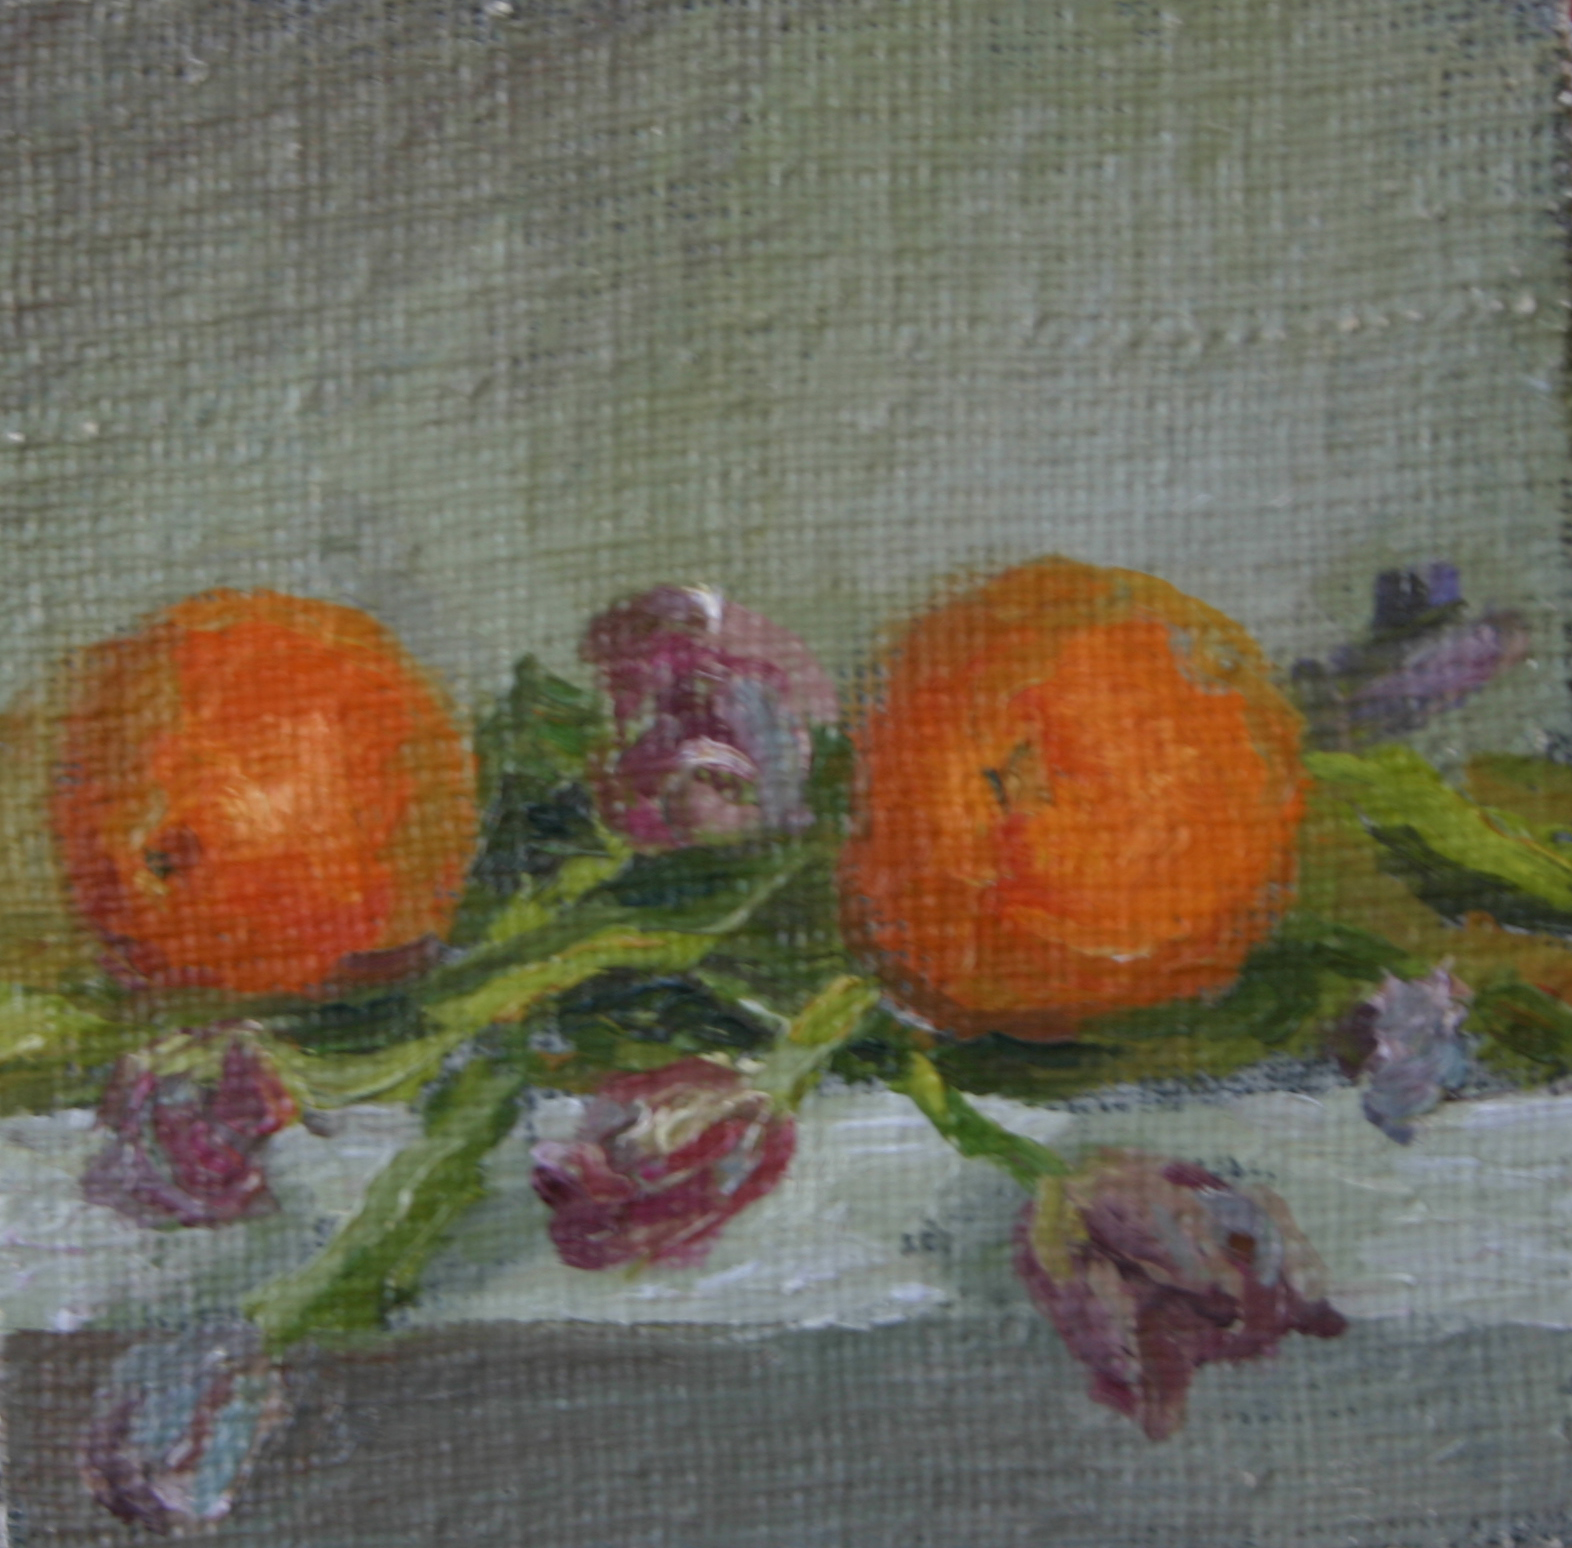 'Oranges and Flowers'